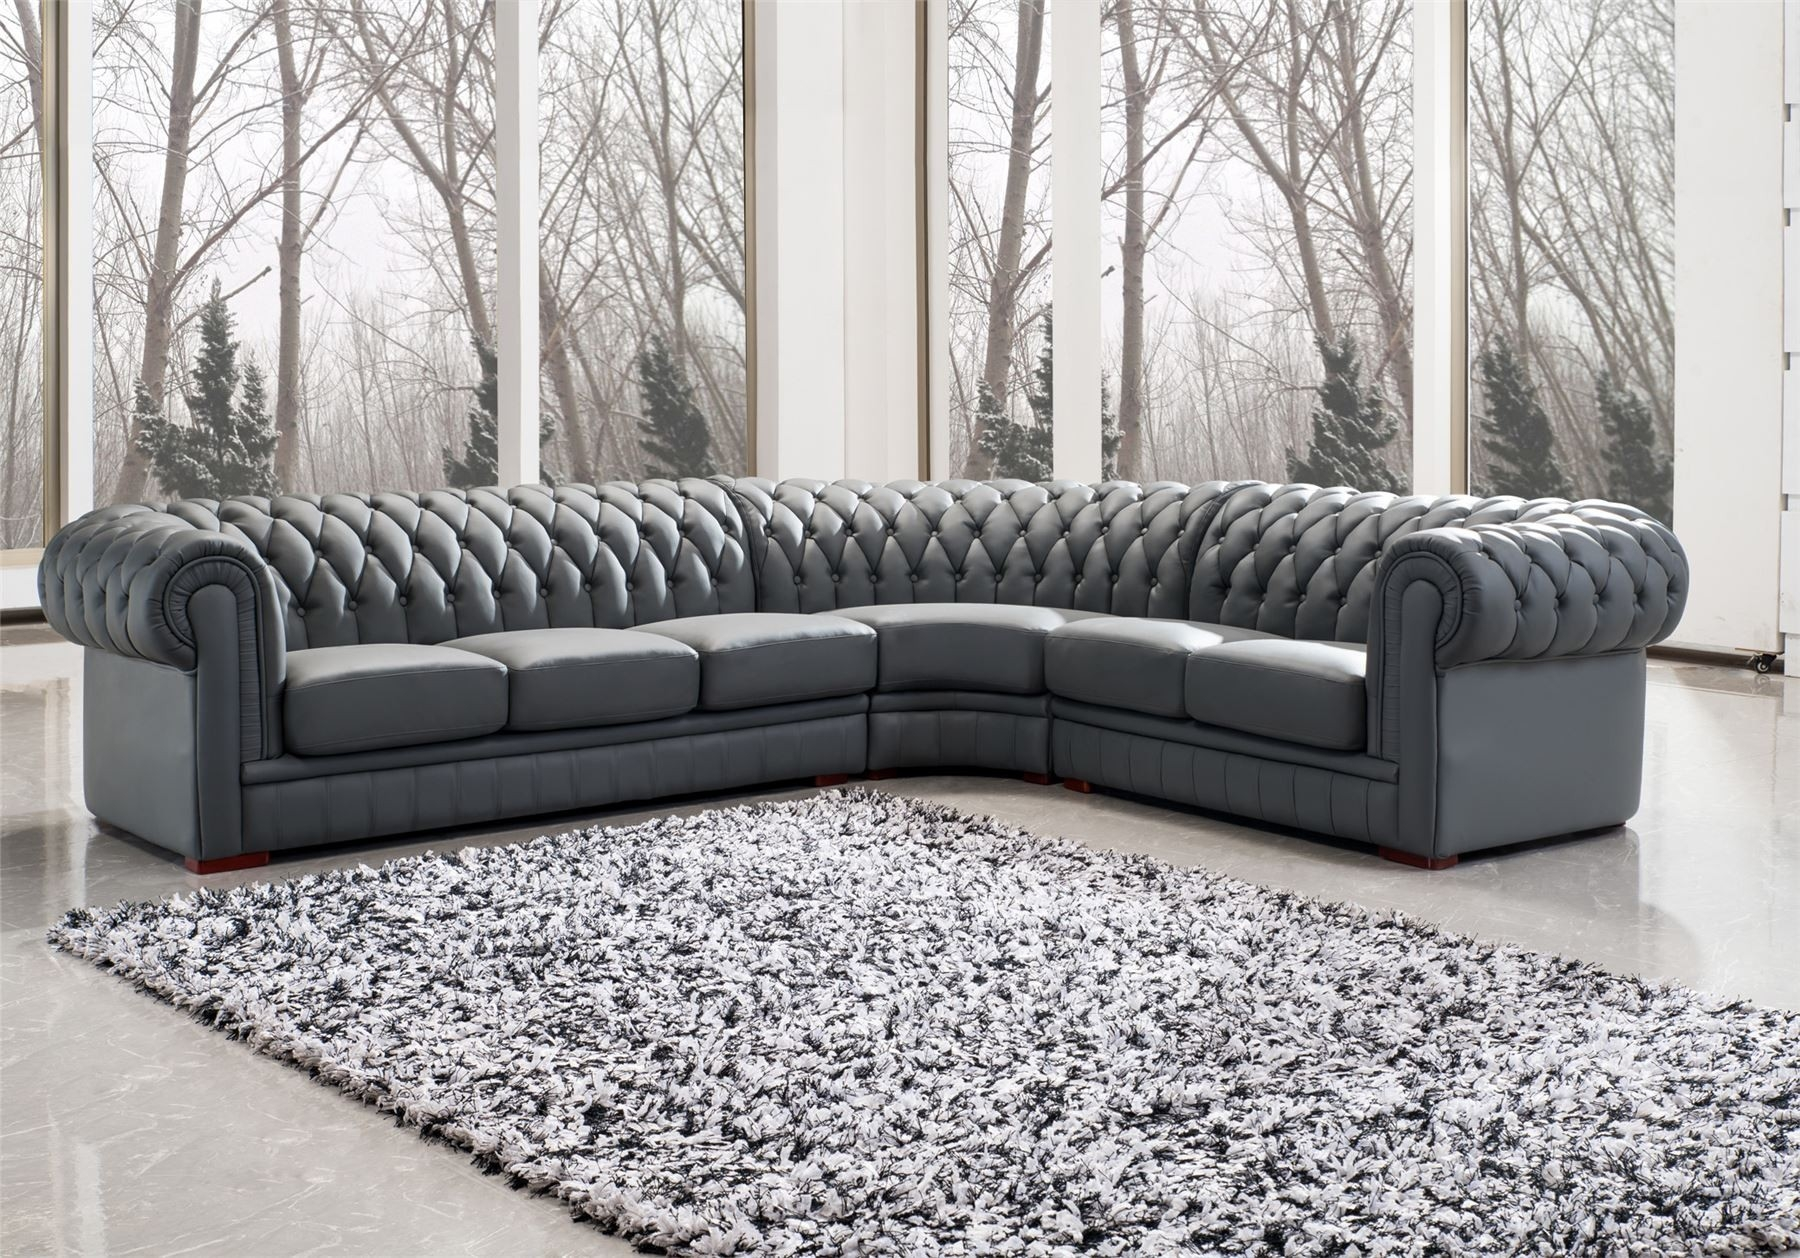 Sofa 8 Way Hand Tied Sofa Brands Dreamy High Quality Furniture Intended For Bespoke Large Corner Sofas (Image 13 of 15)